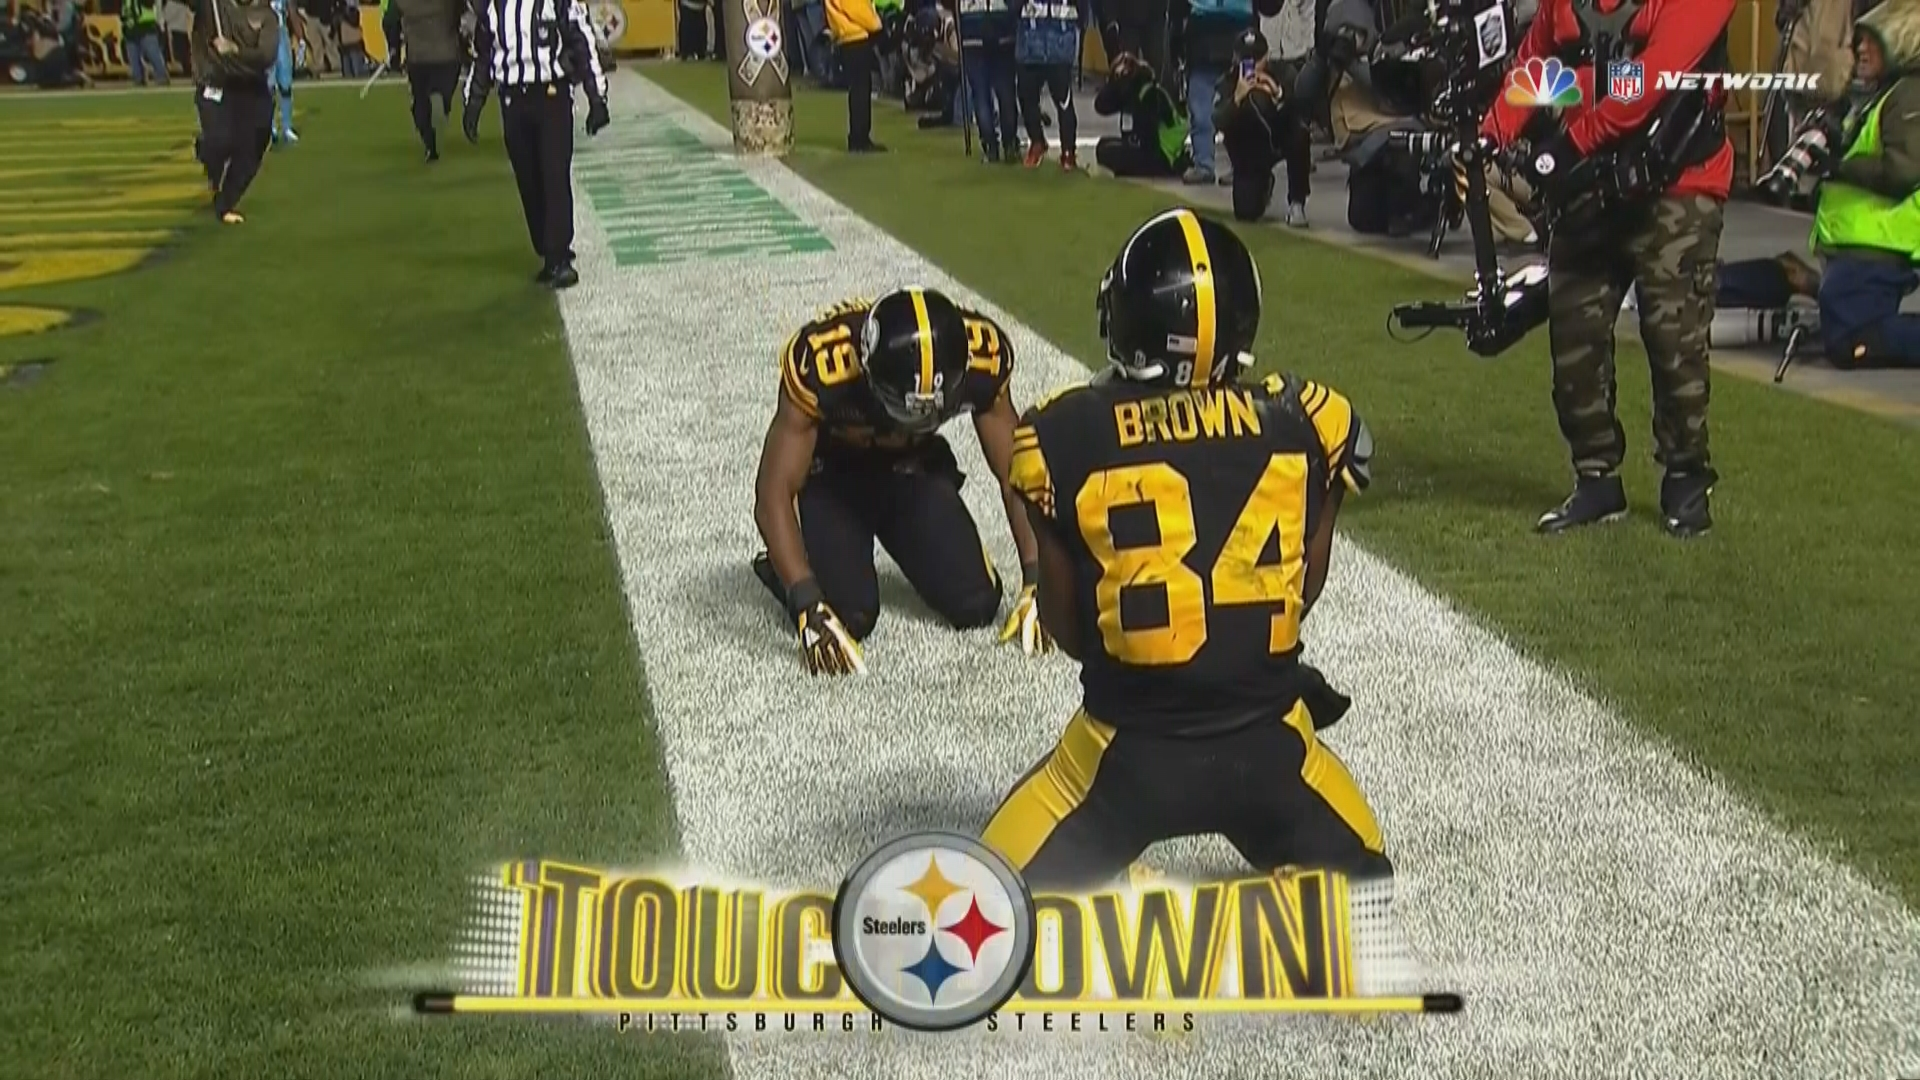 Antonio Brown catch Steelers WR uses helmet and one hand for TD